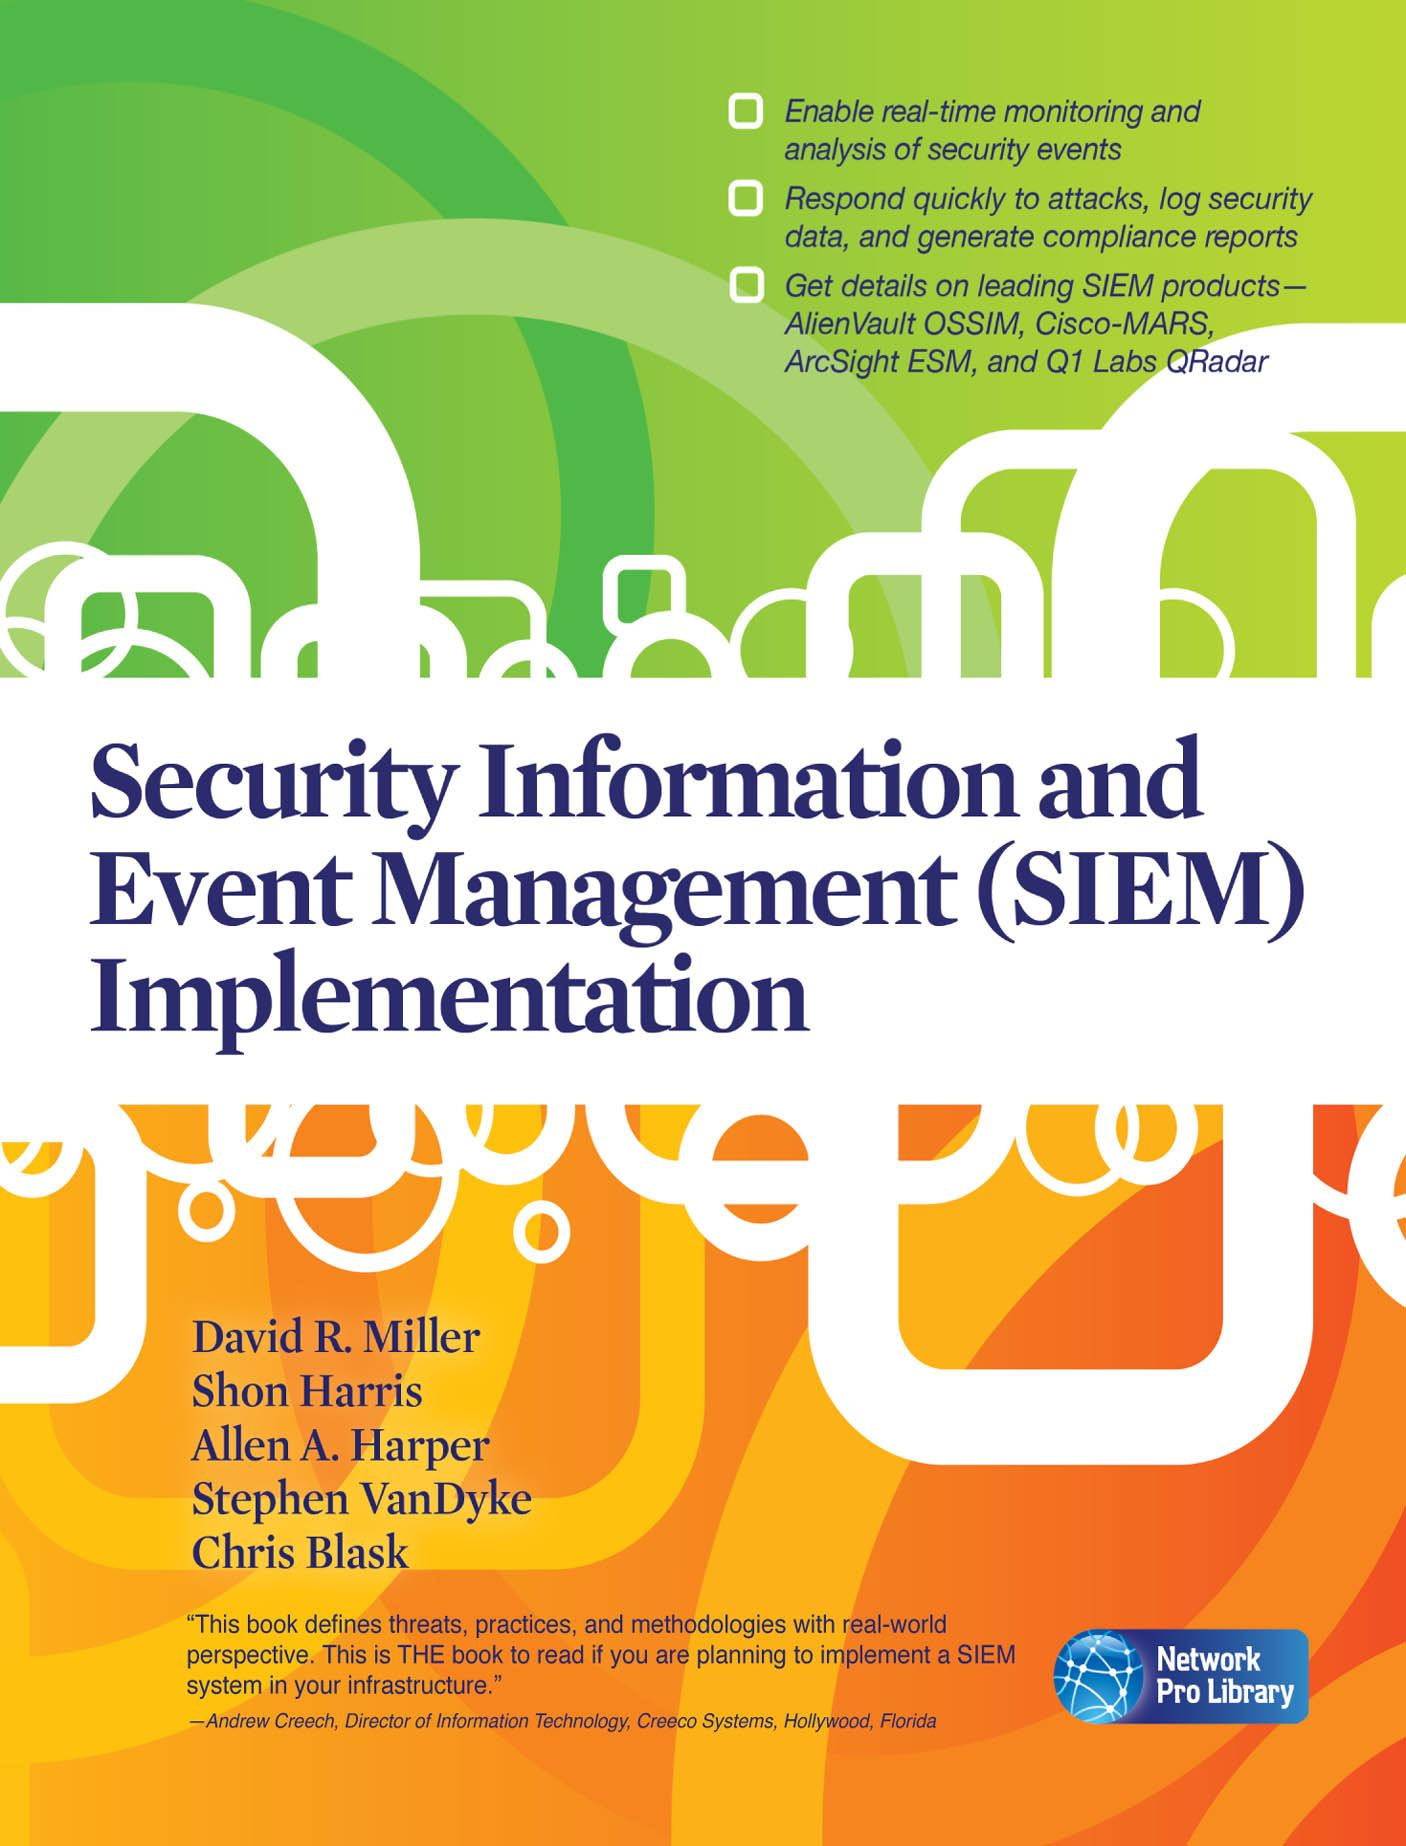 Security Information and Event Management (SIEM) Implementation By: David Miller,Zachary Payton,Allen Harper,Chris Blask,Stephen VanDyke